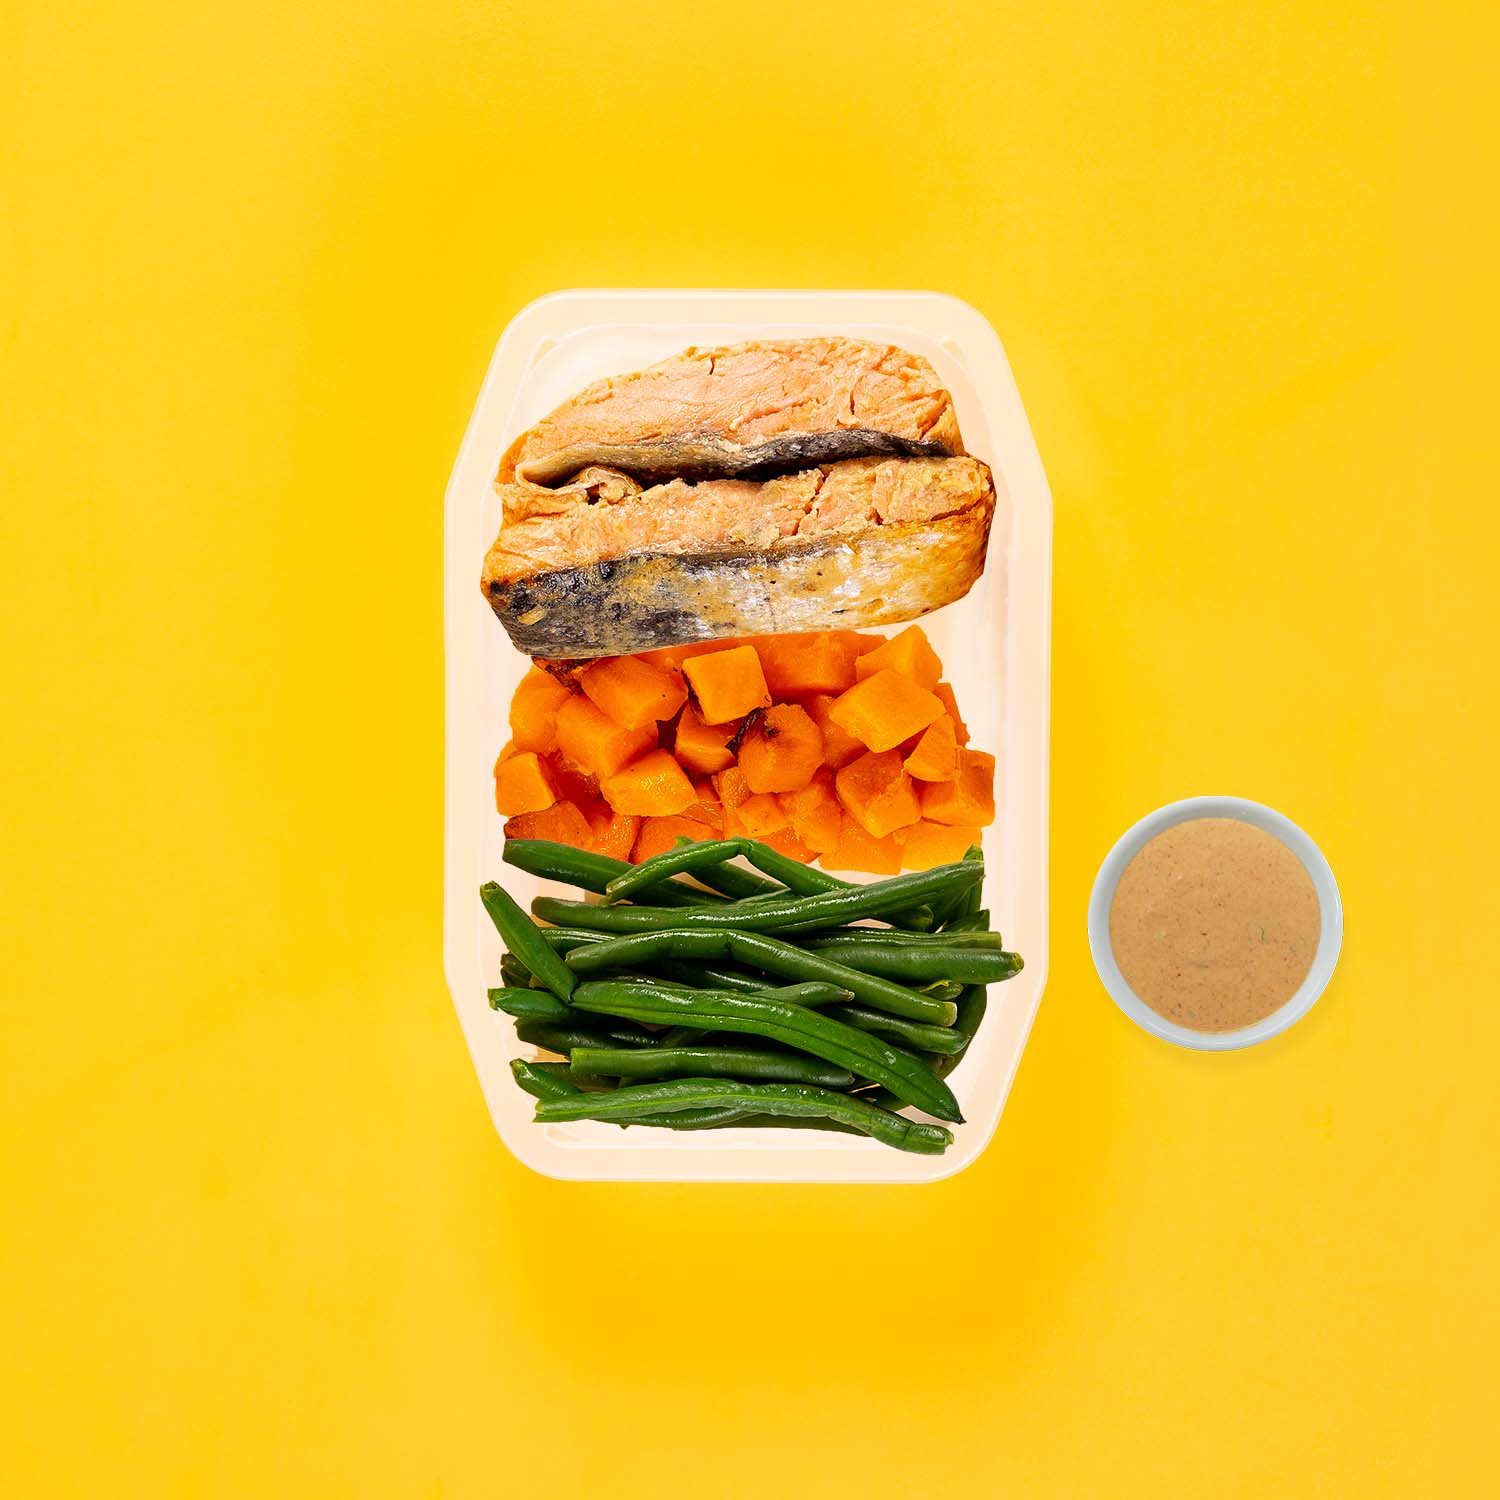 200g Miso Salmon 100g Coconut Pumpkin 100g Green Beans Butter Chicken Sauce